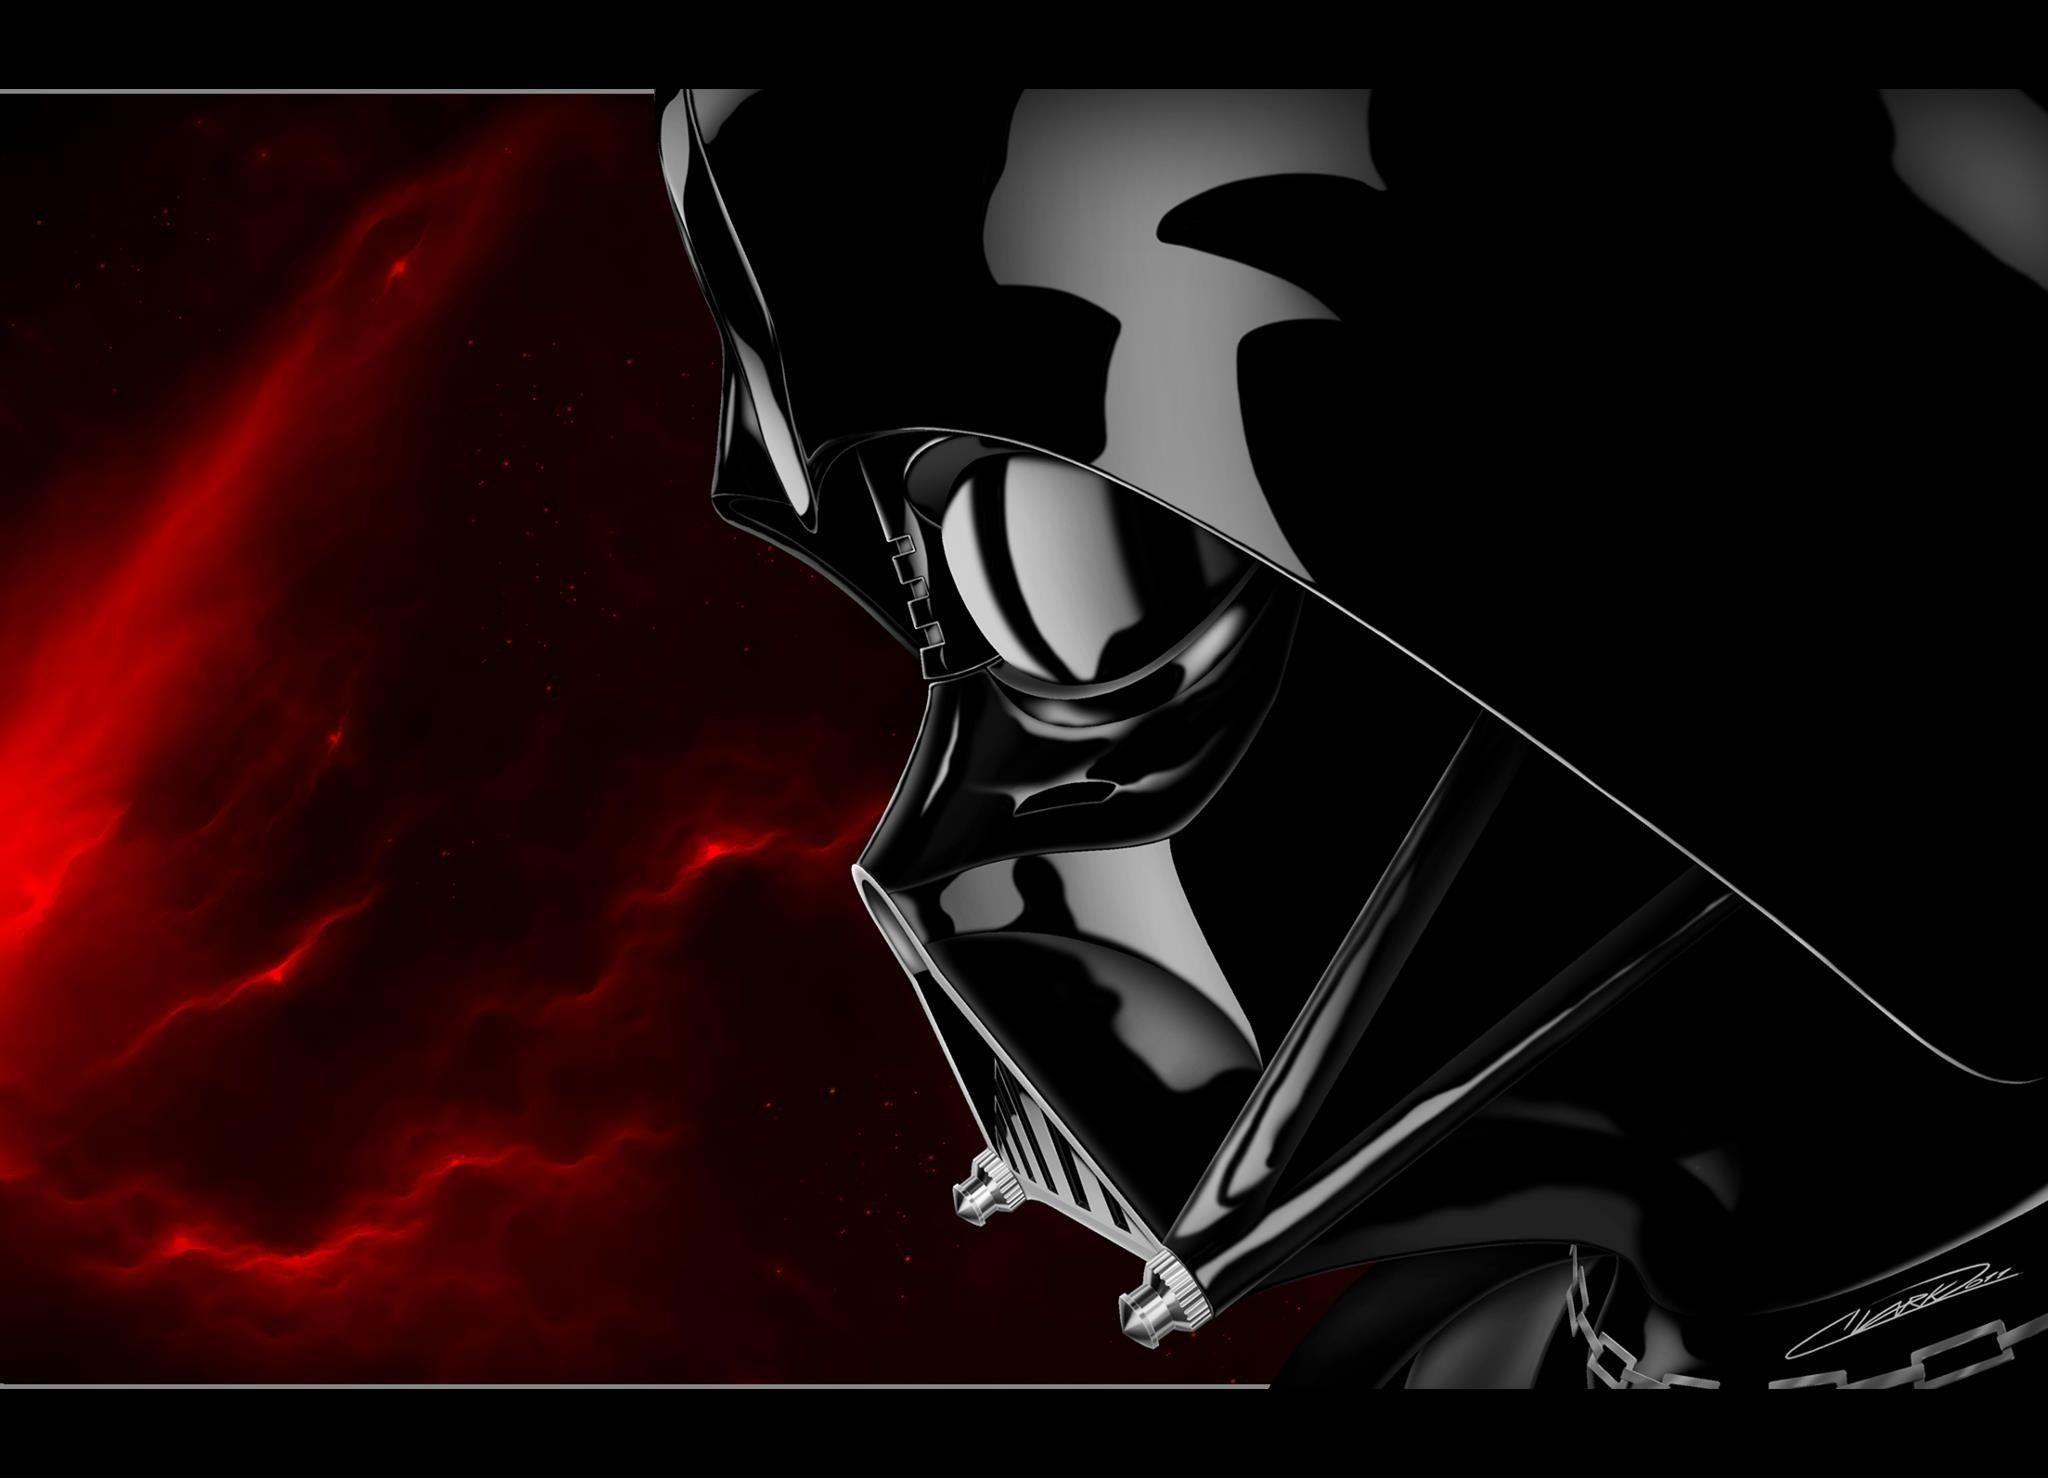 Star Wars Darth Vader Lego Films Wallpapers